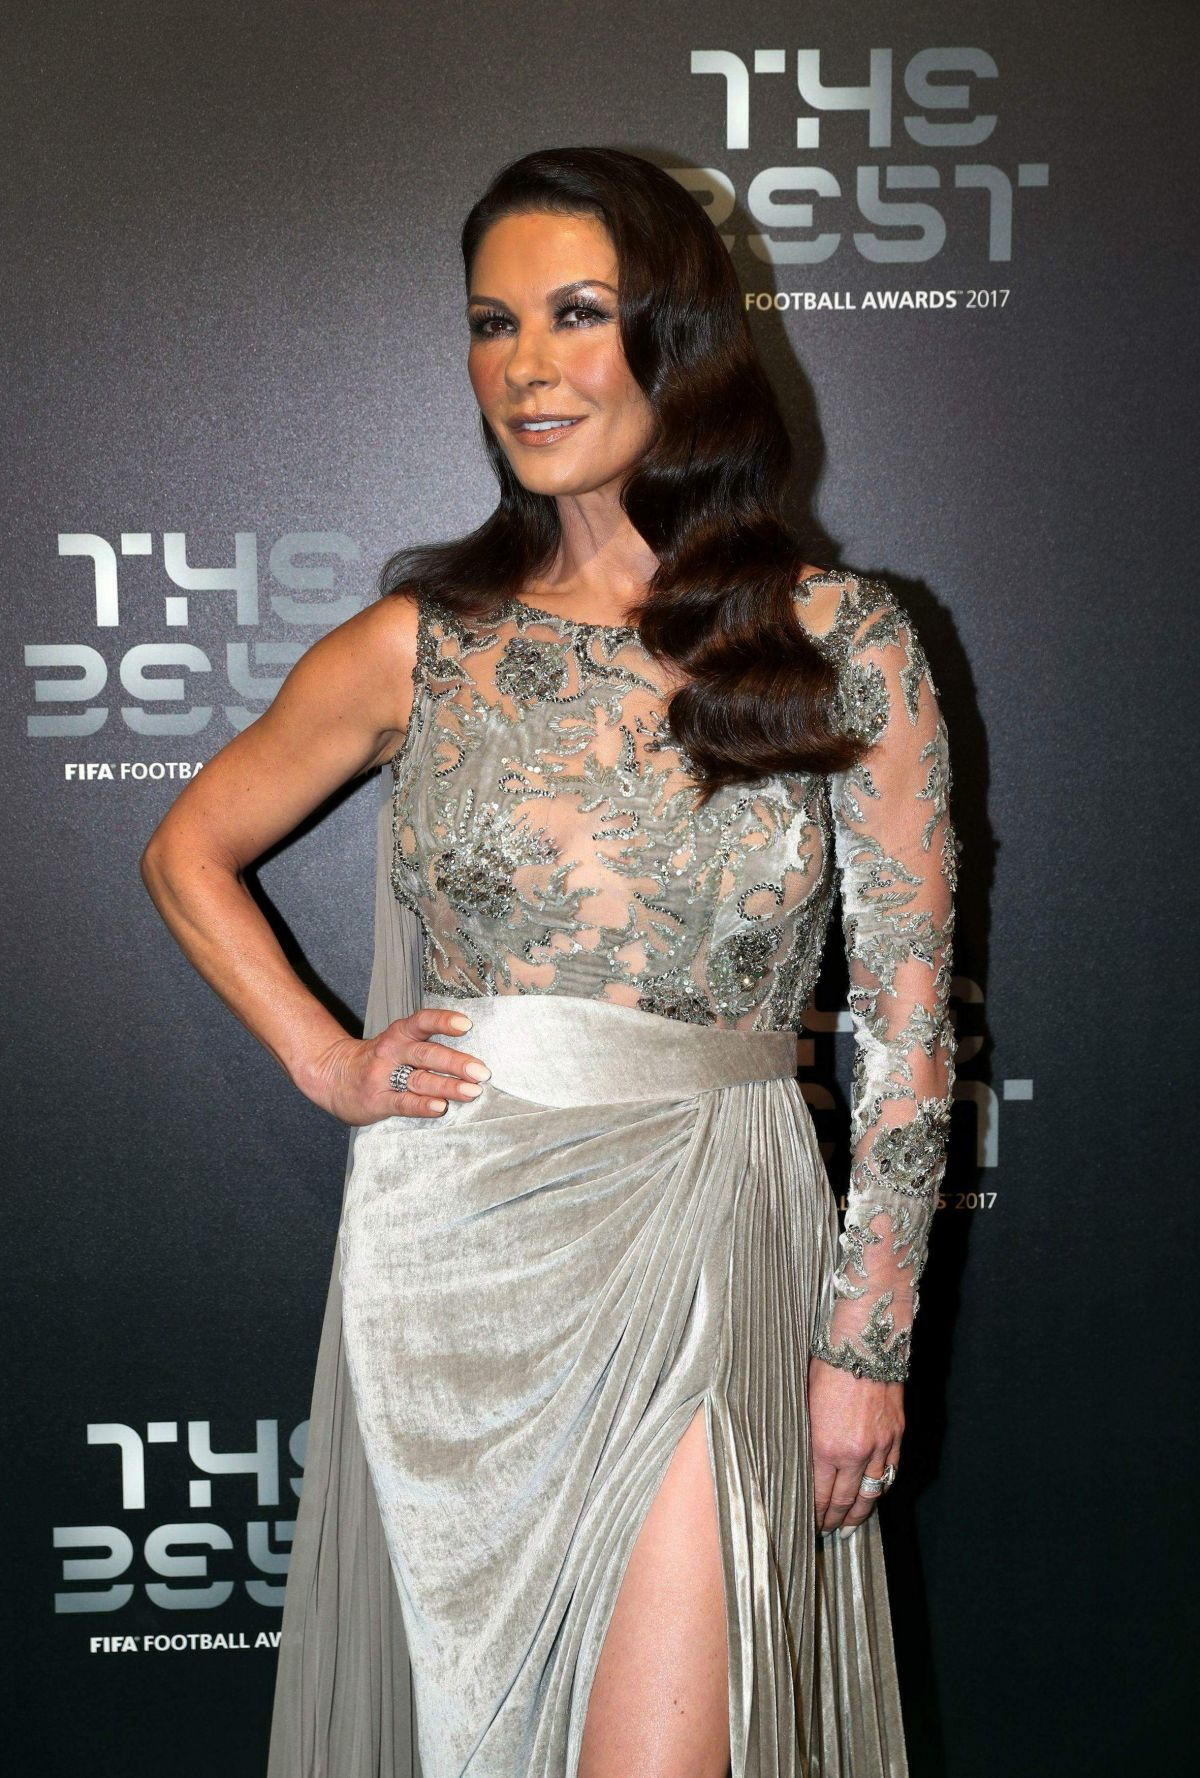 Catherine Zeta-Jones At The Best FIFA Football Awards in London